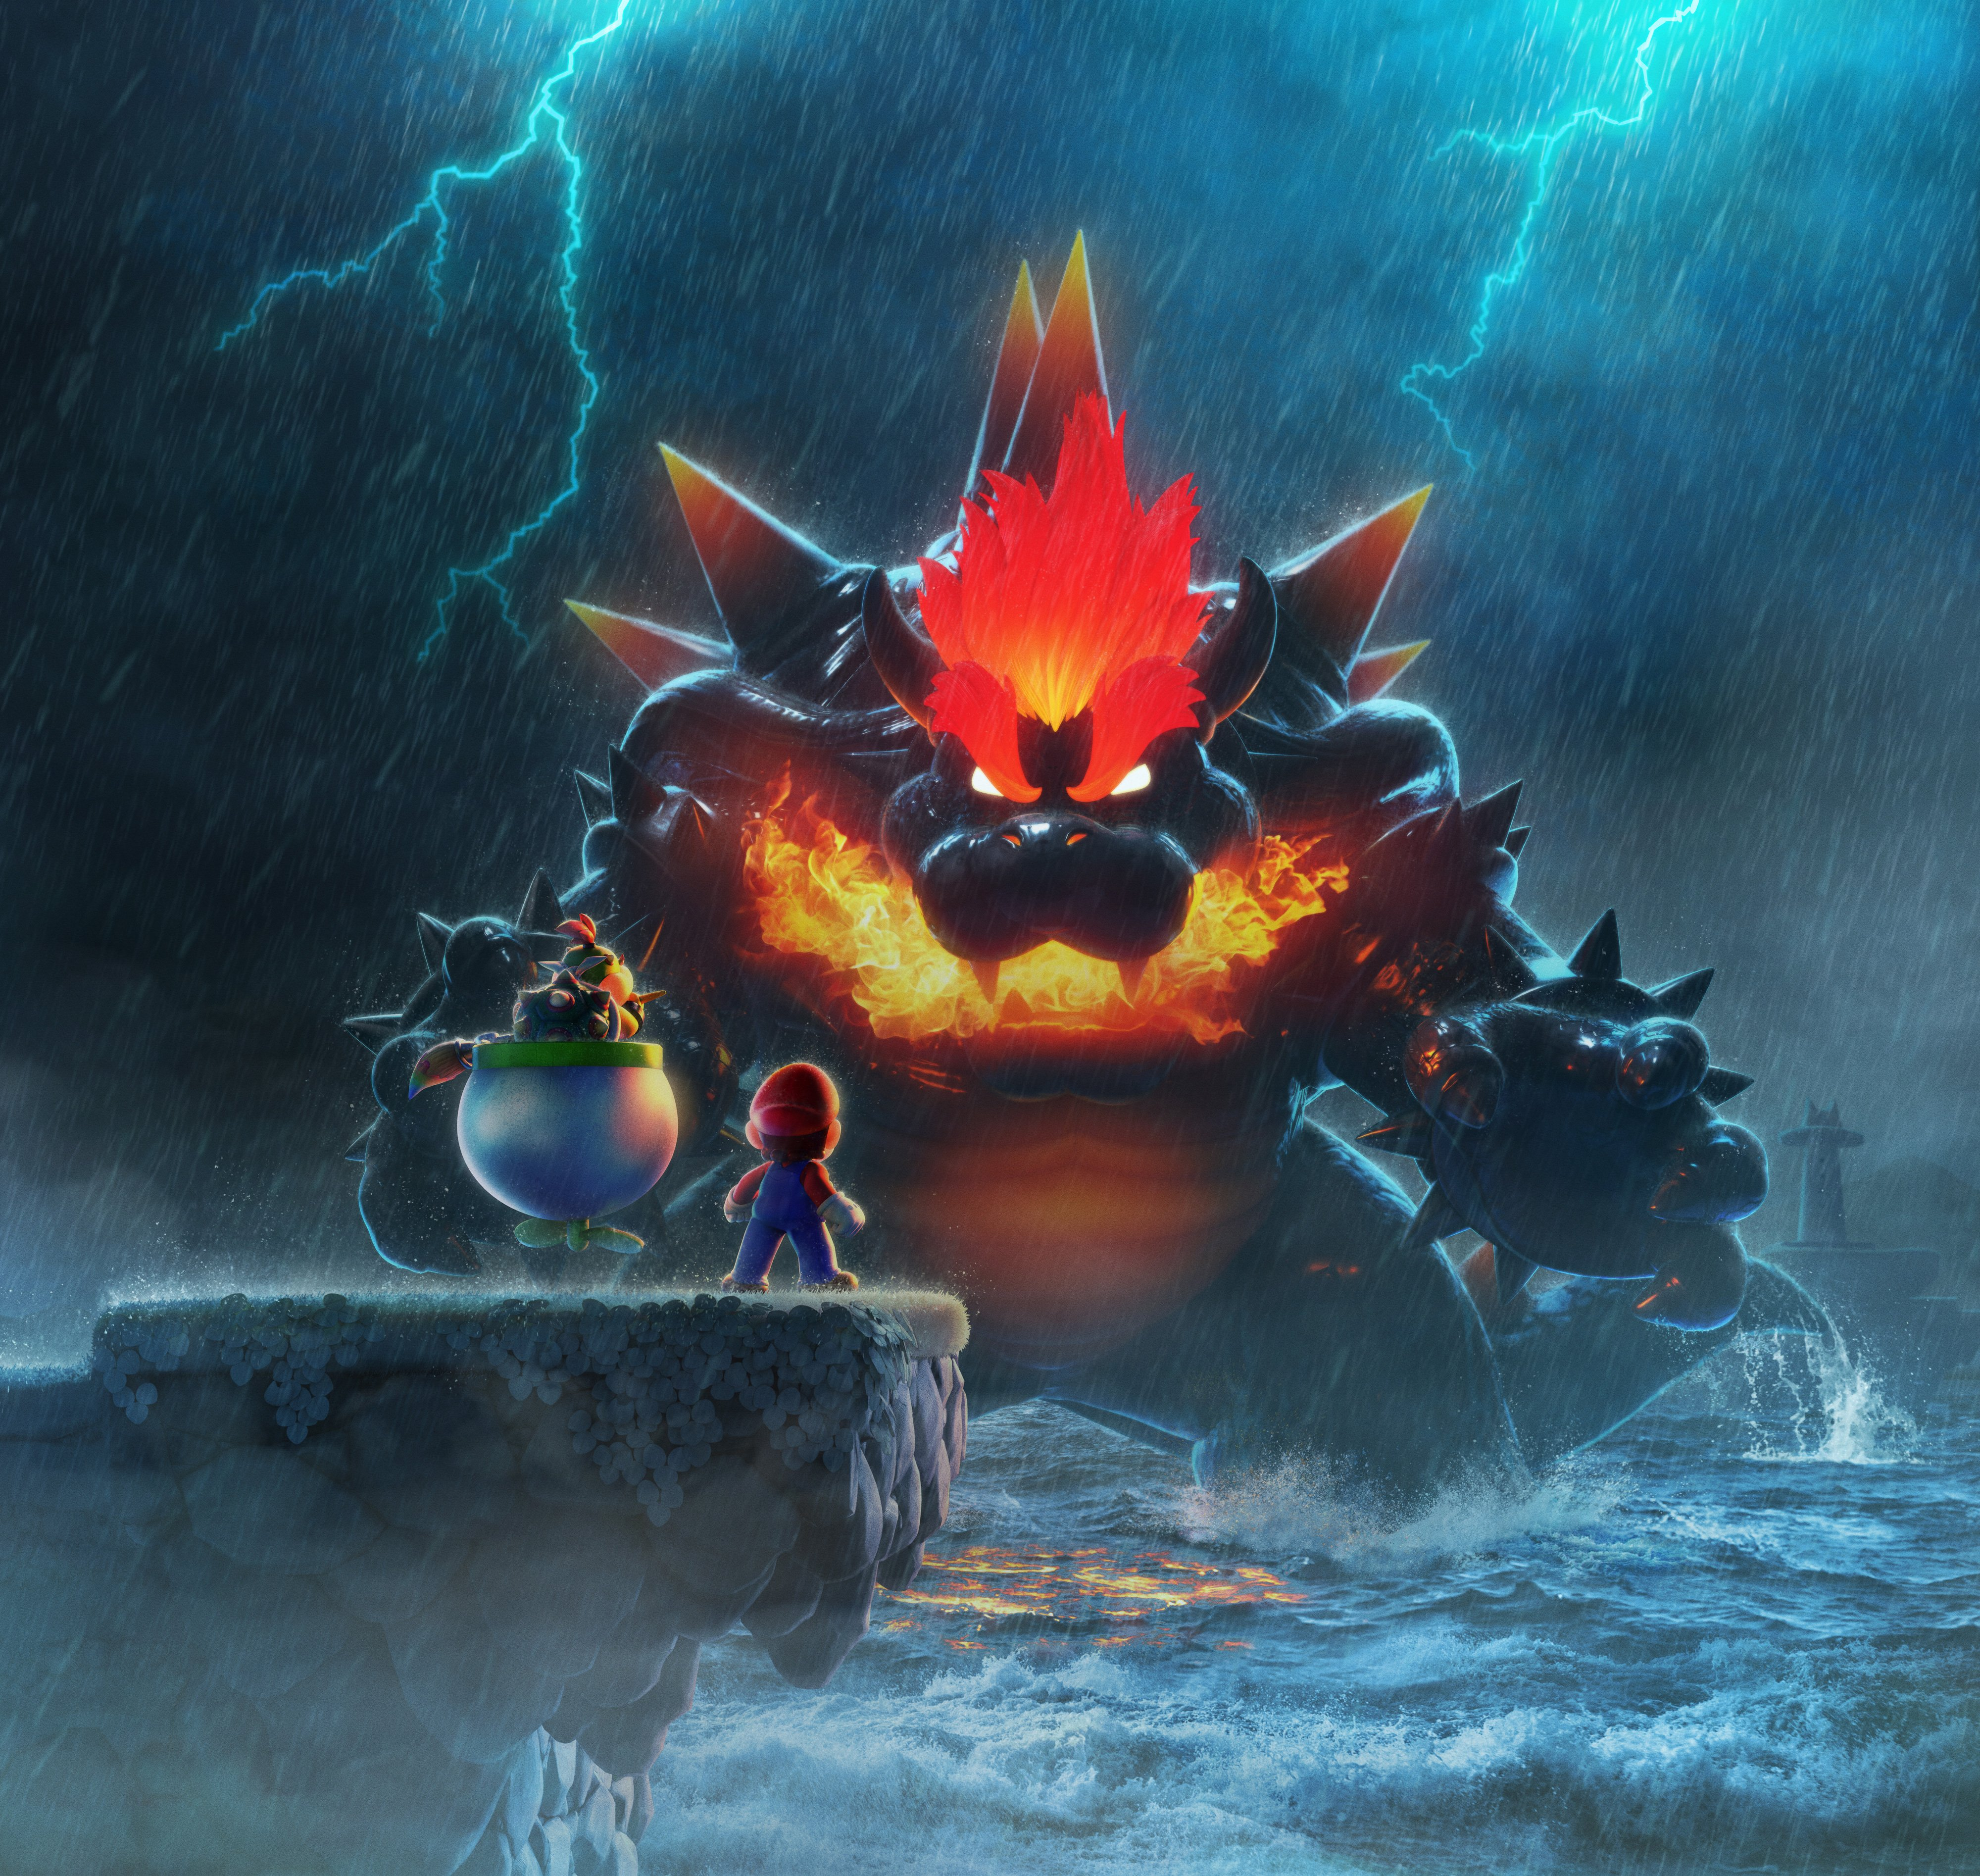 Super Mario 3D World + Bowser's Fury amazing artwork on Paul Gale Network